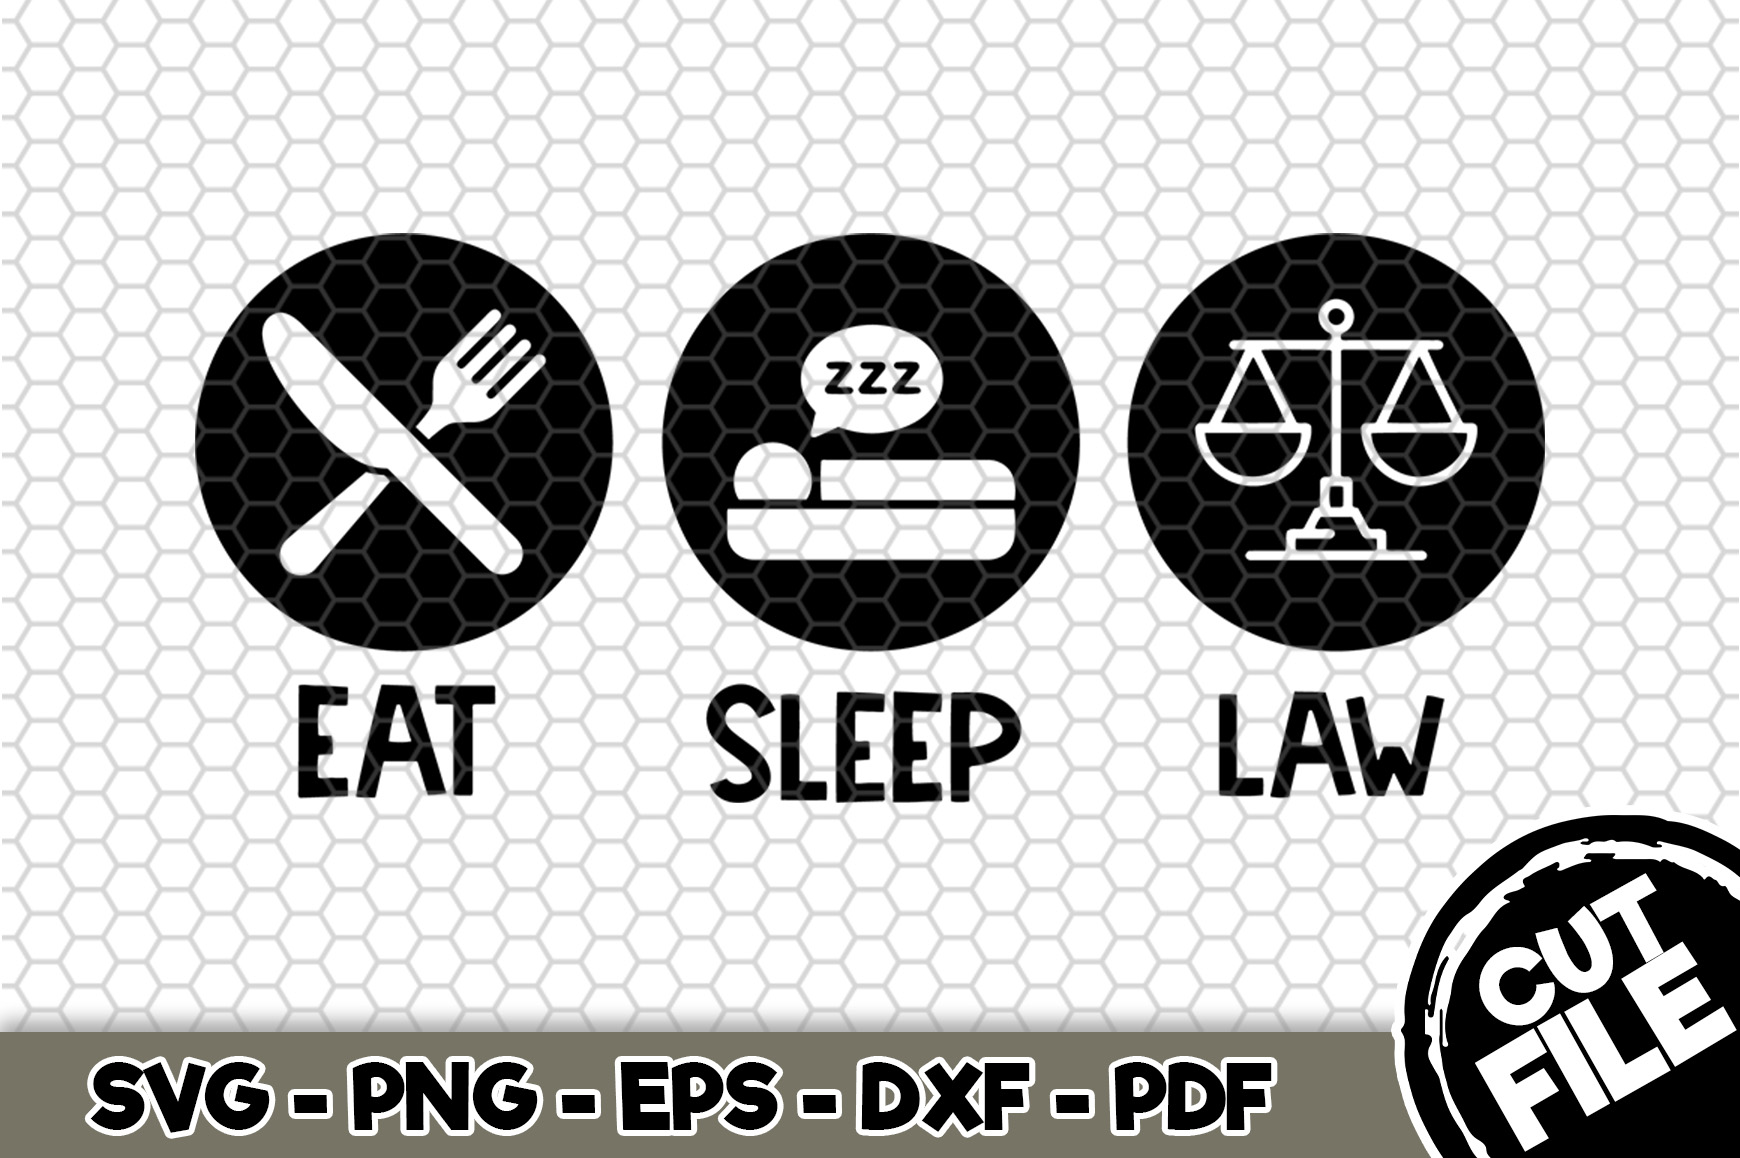 Download Free Eat Sleep Law Graphic By Svgexpress Creative Fabrica for Cricut Explore, Silhouette and other cutting machines.